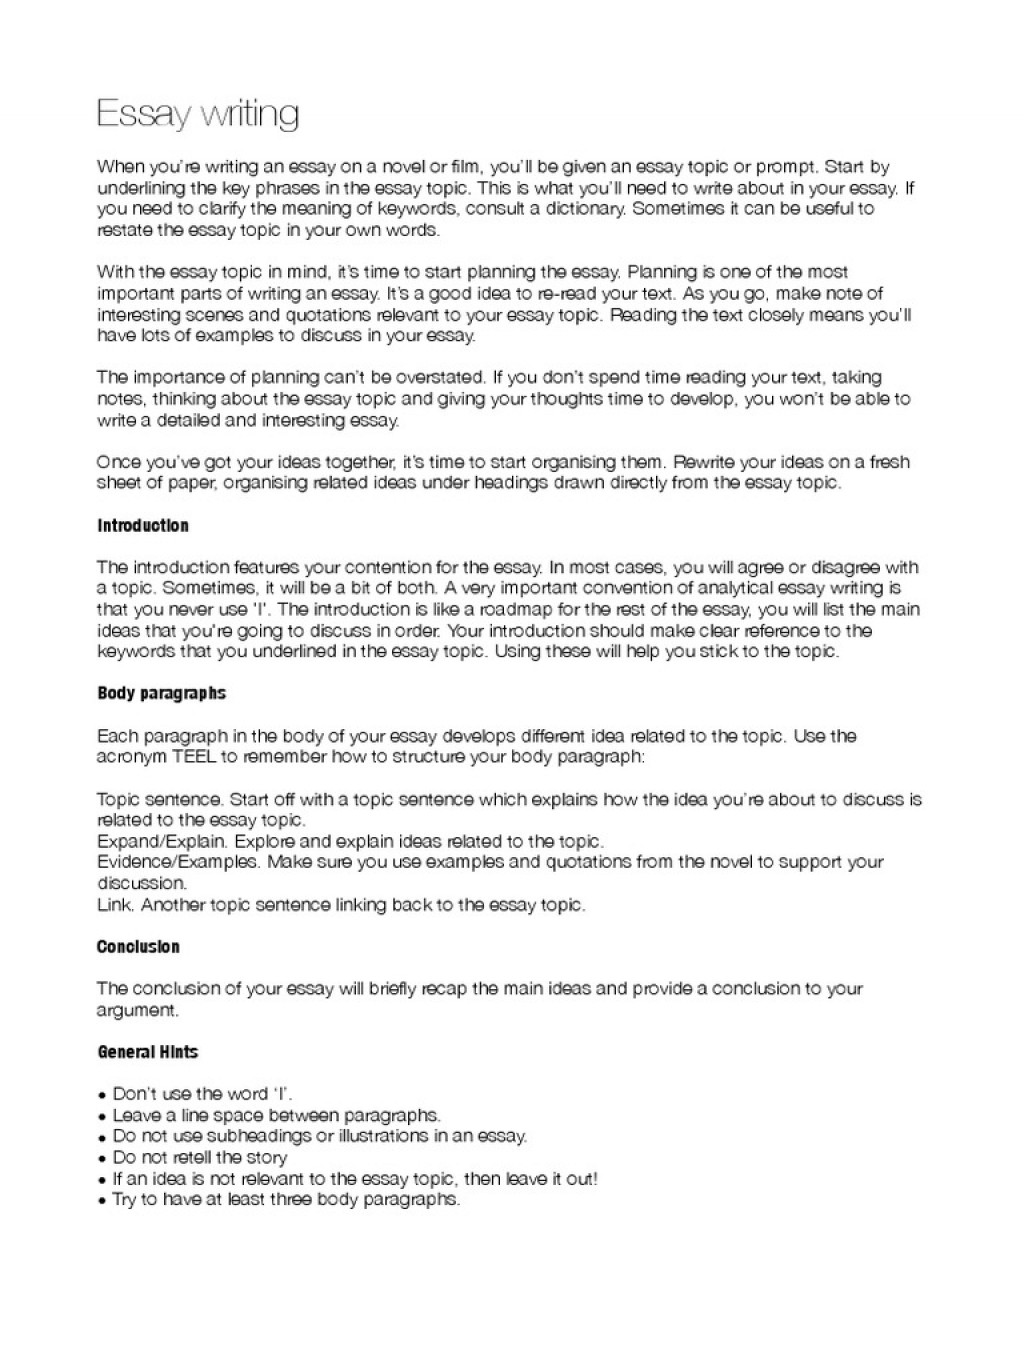 003 Hunger Games Essay Writing The Essays How To Start Off Body Paragraph In An Examples Third Argumentative Synthesis Analytical Informative Persuasive Expository Impressive A First Words Large